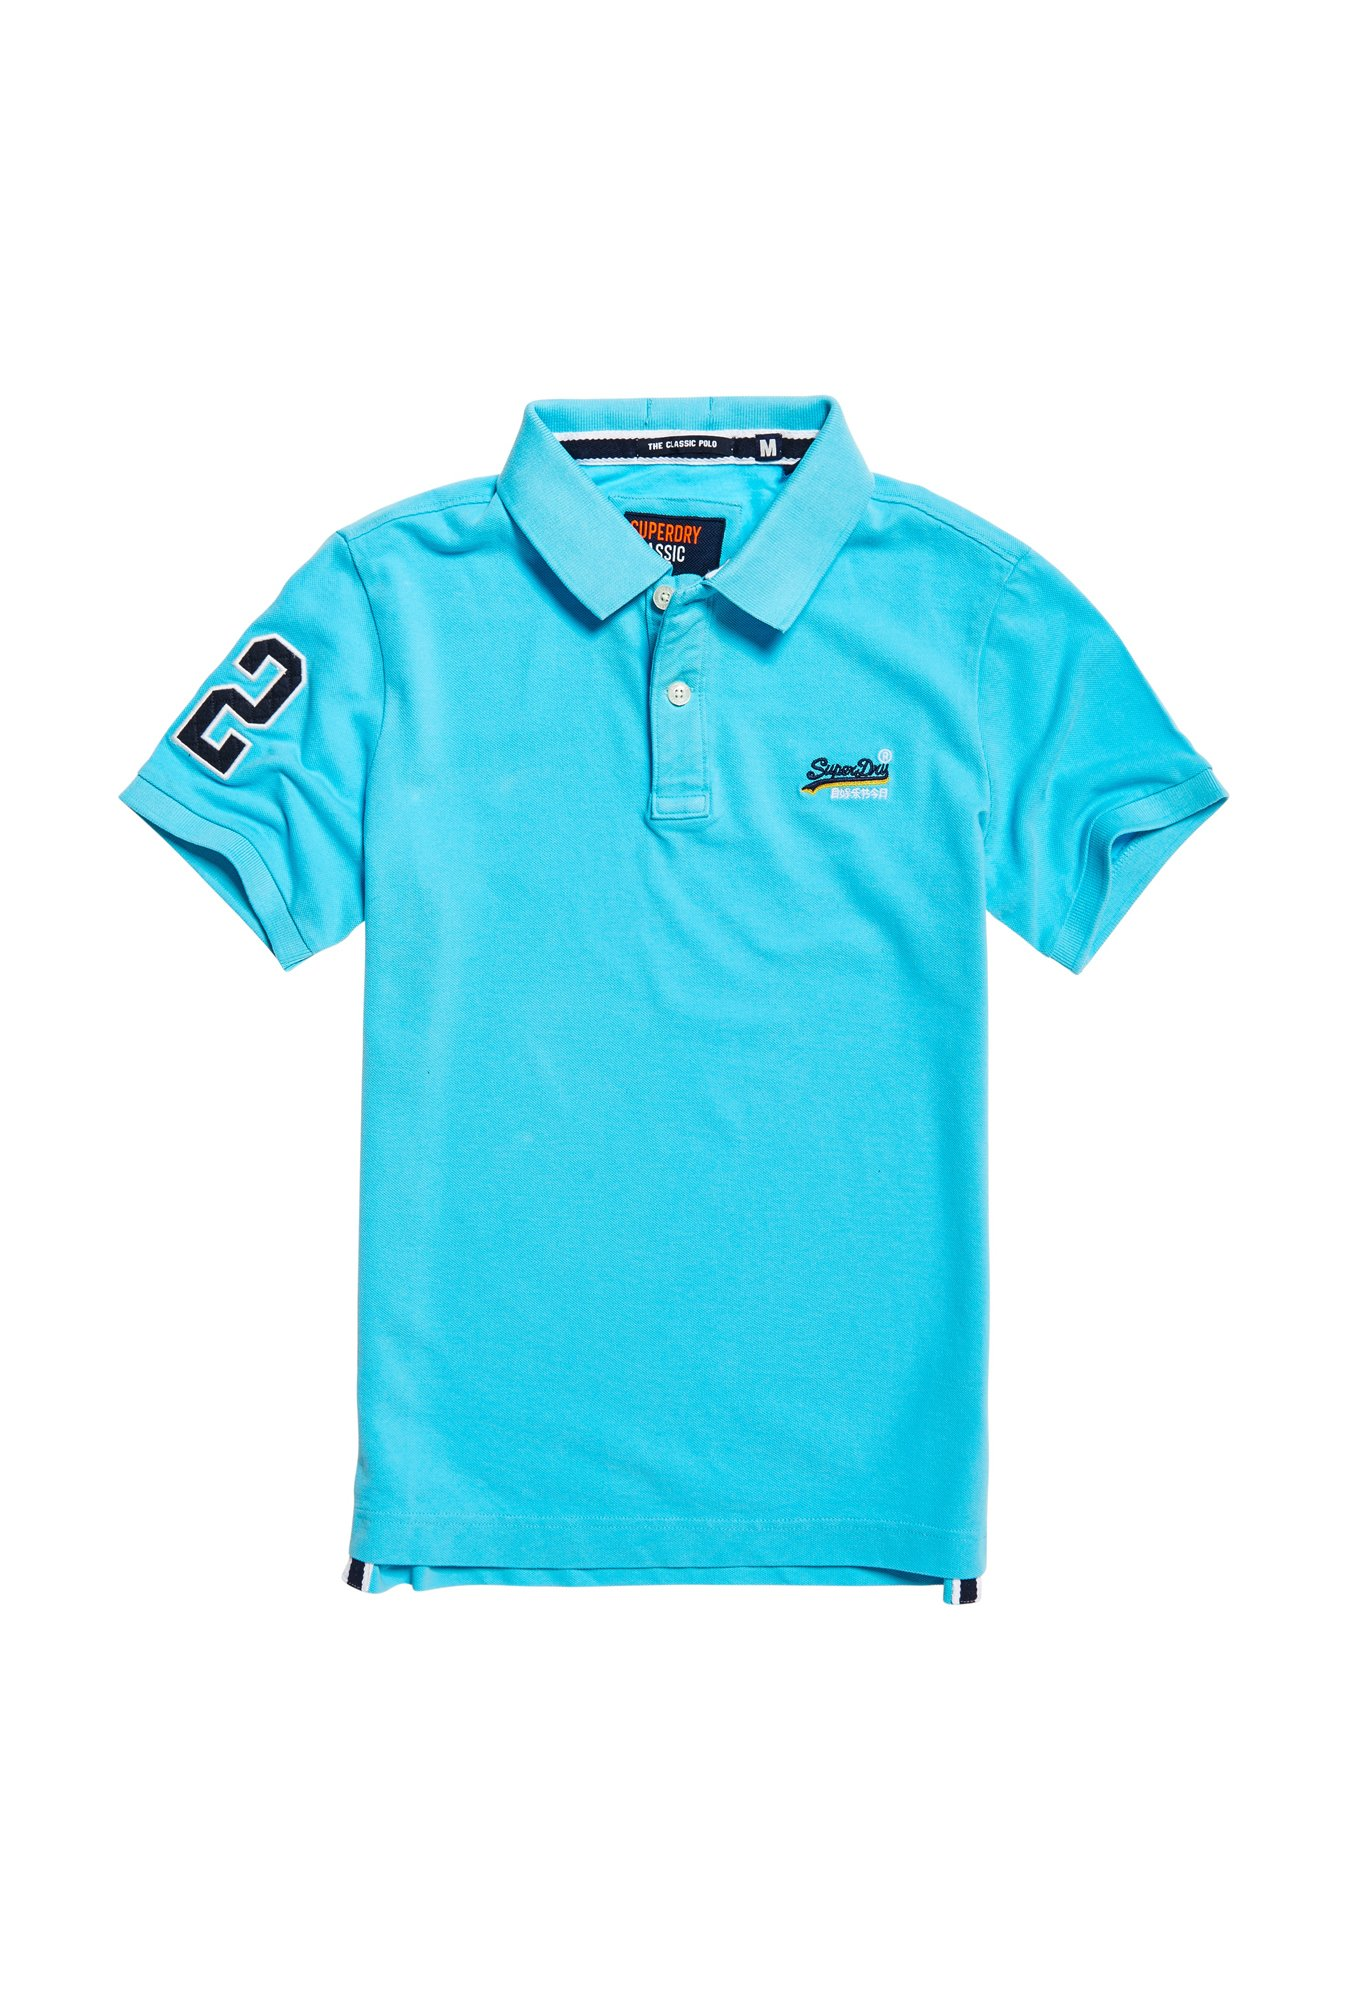 Superdry Blue Cotton Polo T-Shirt